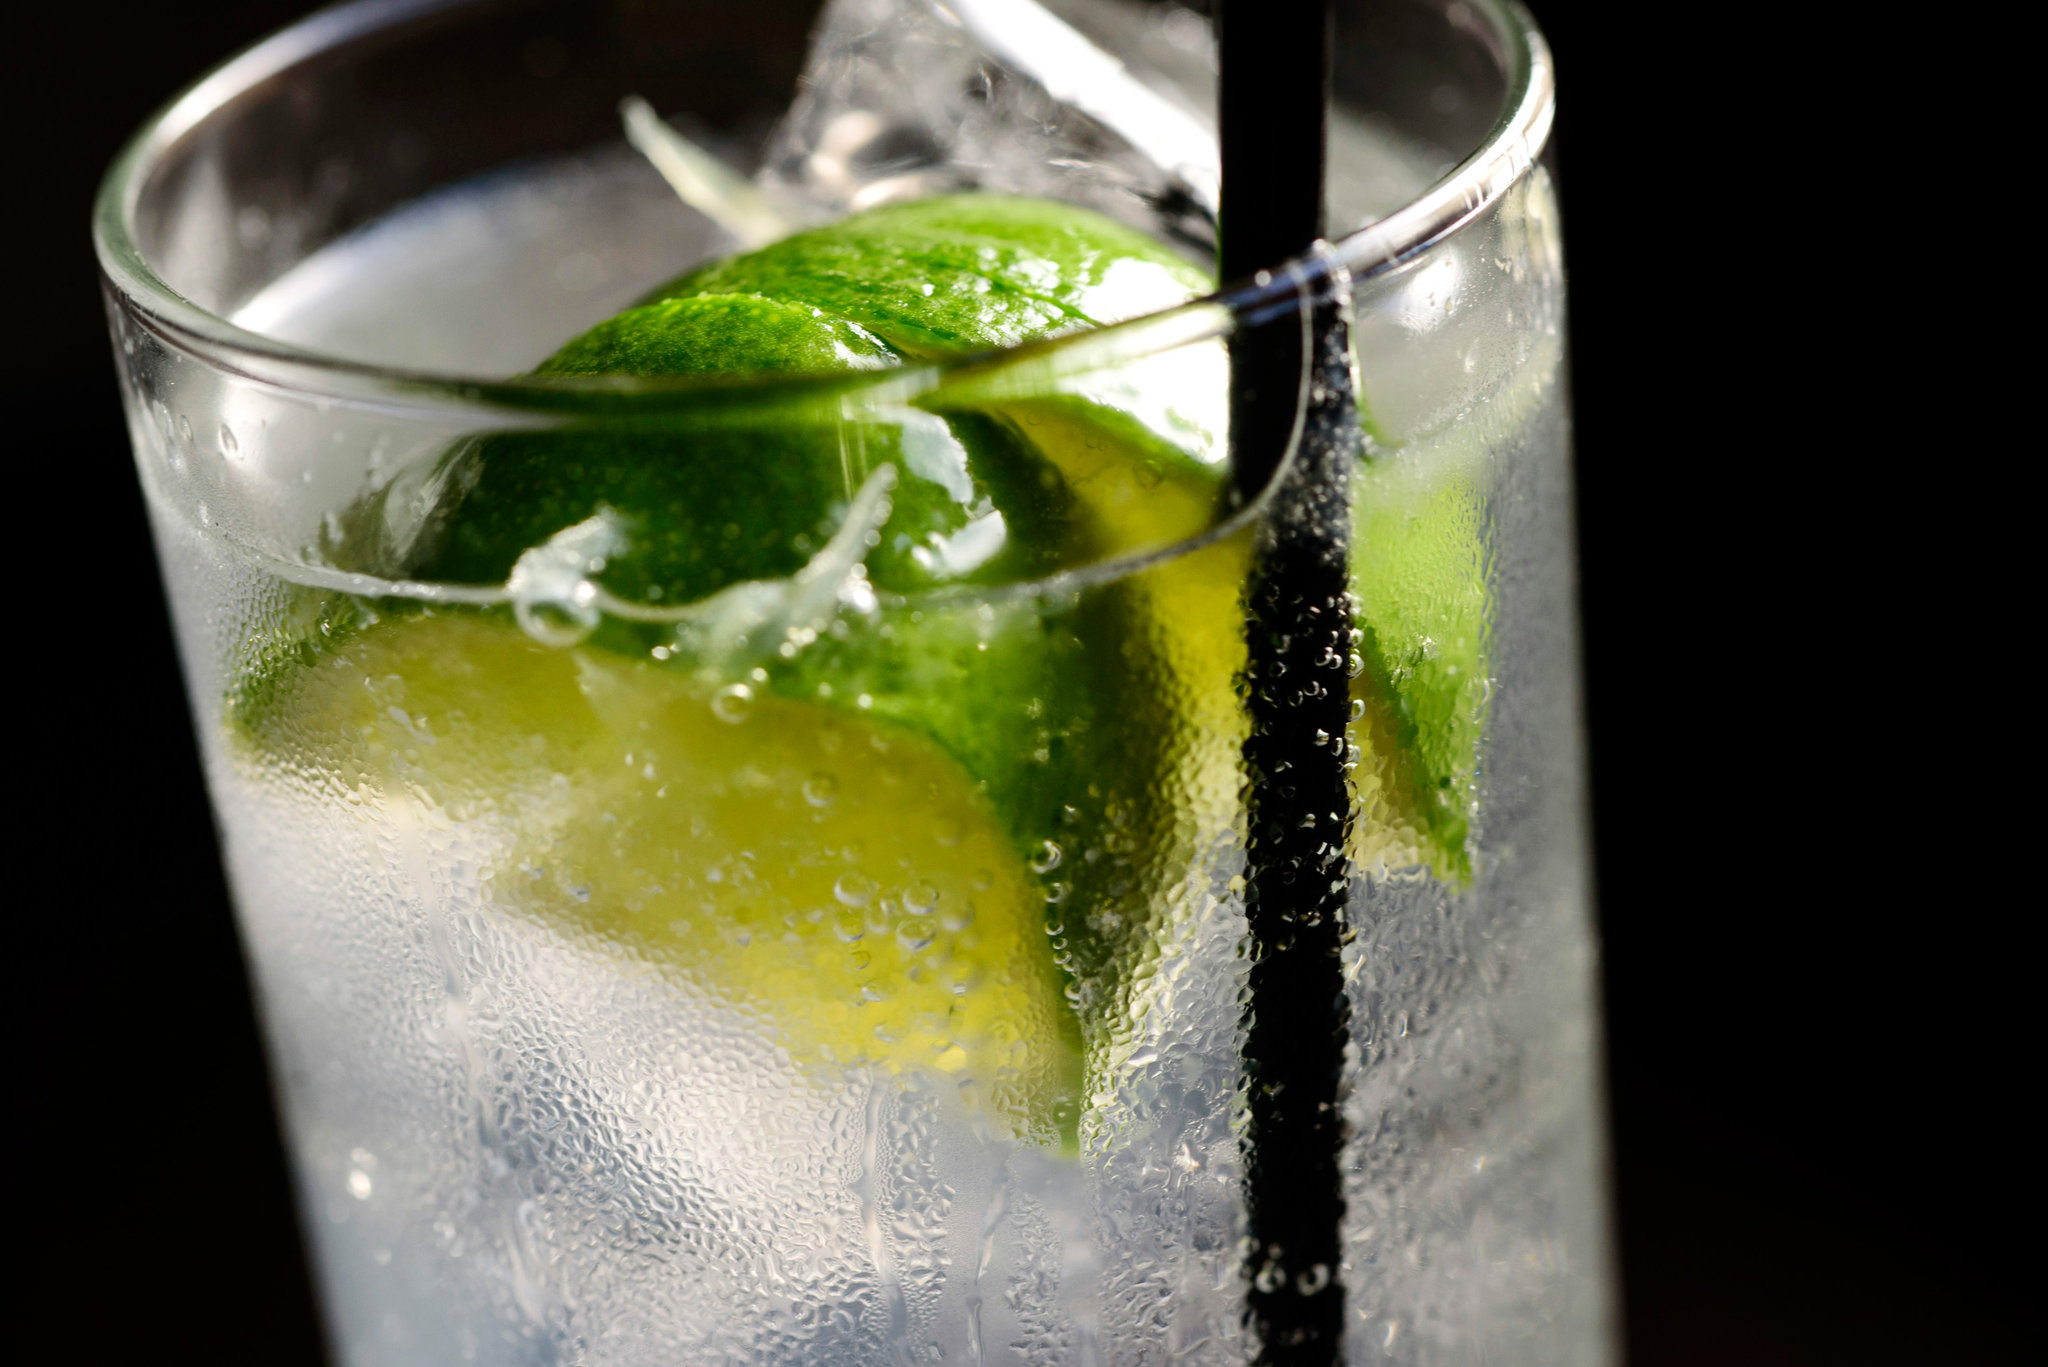 Lovable Tonic Recipe Nyt Cooking How To Make Tequila Taste Better How To Make Tequila Drinks Tequila nice food How To Make Tequila